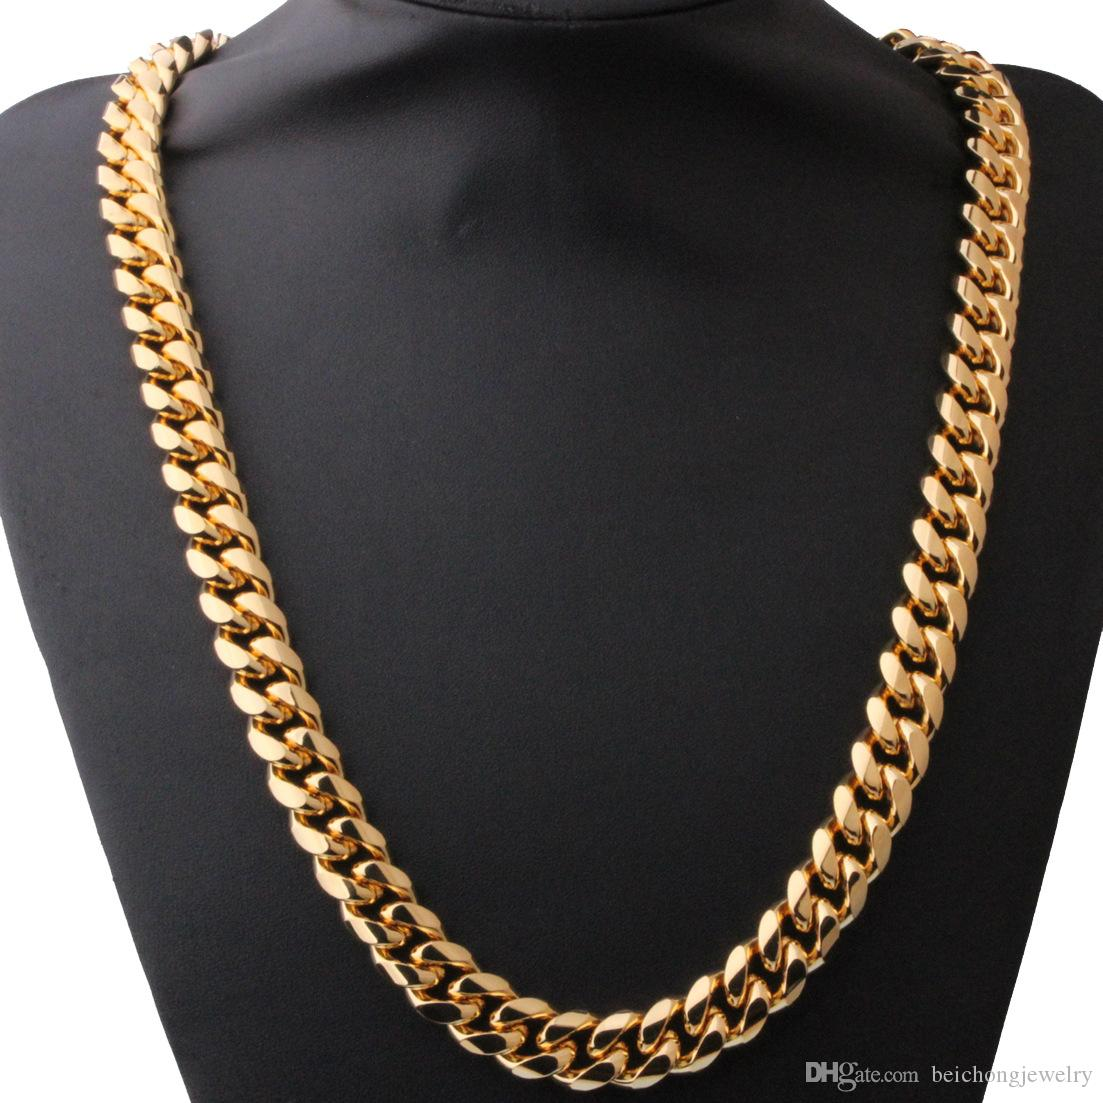 Beichong 15mm Mens Cuban Miami Link Necklace Stainless steel Rhinestone Clasp Iced Out Gold Silver Hip hop Chain Necklace